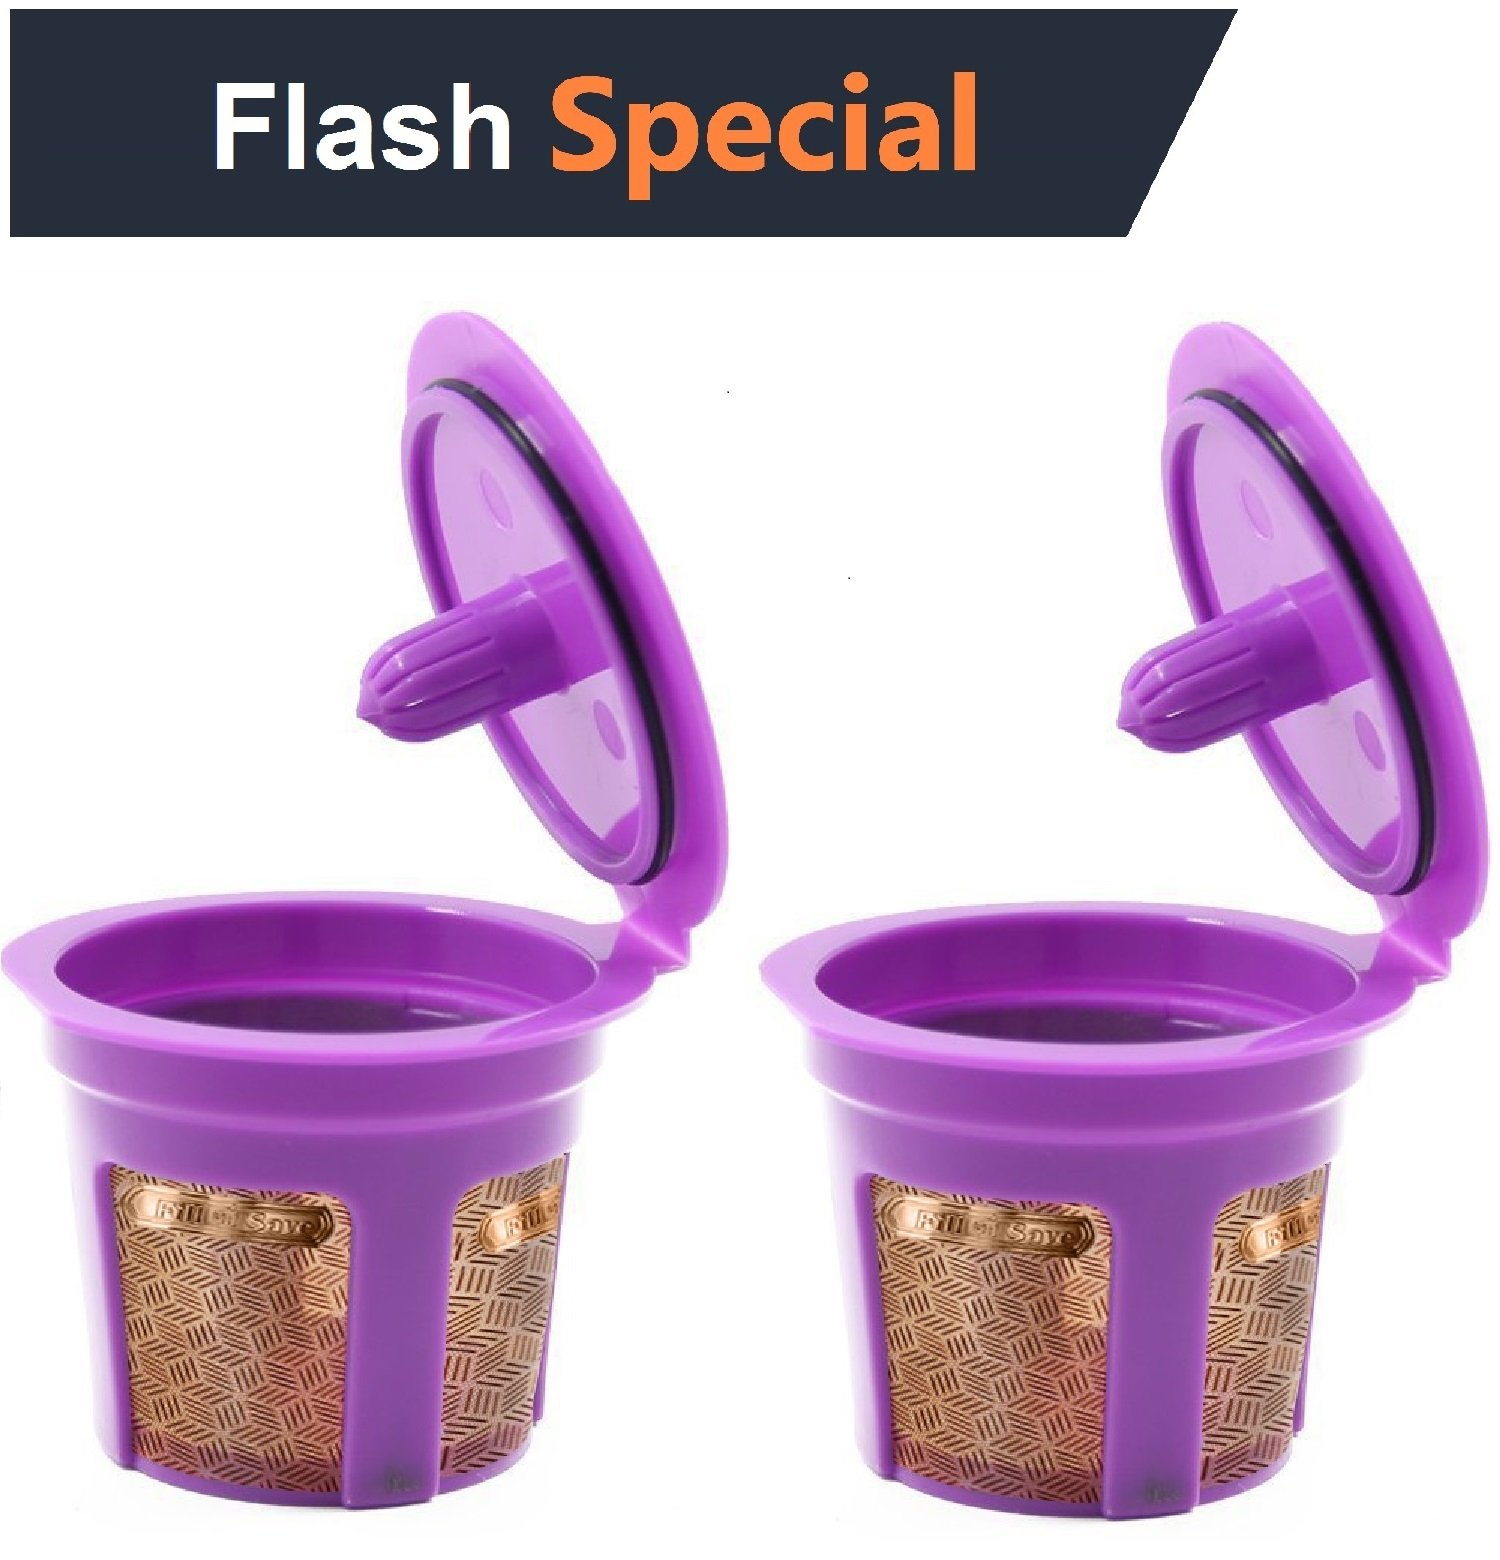 Fill N Save 2 Pack Reusable K Cups 24 K Gold plated Refillable Keurig Filter for Keurig 2.0 and 1.0 Coffee Machines. Excellent Filter Replacement to Coffee Pods and Accessories.